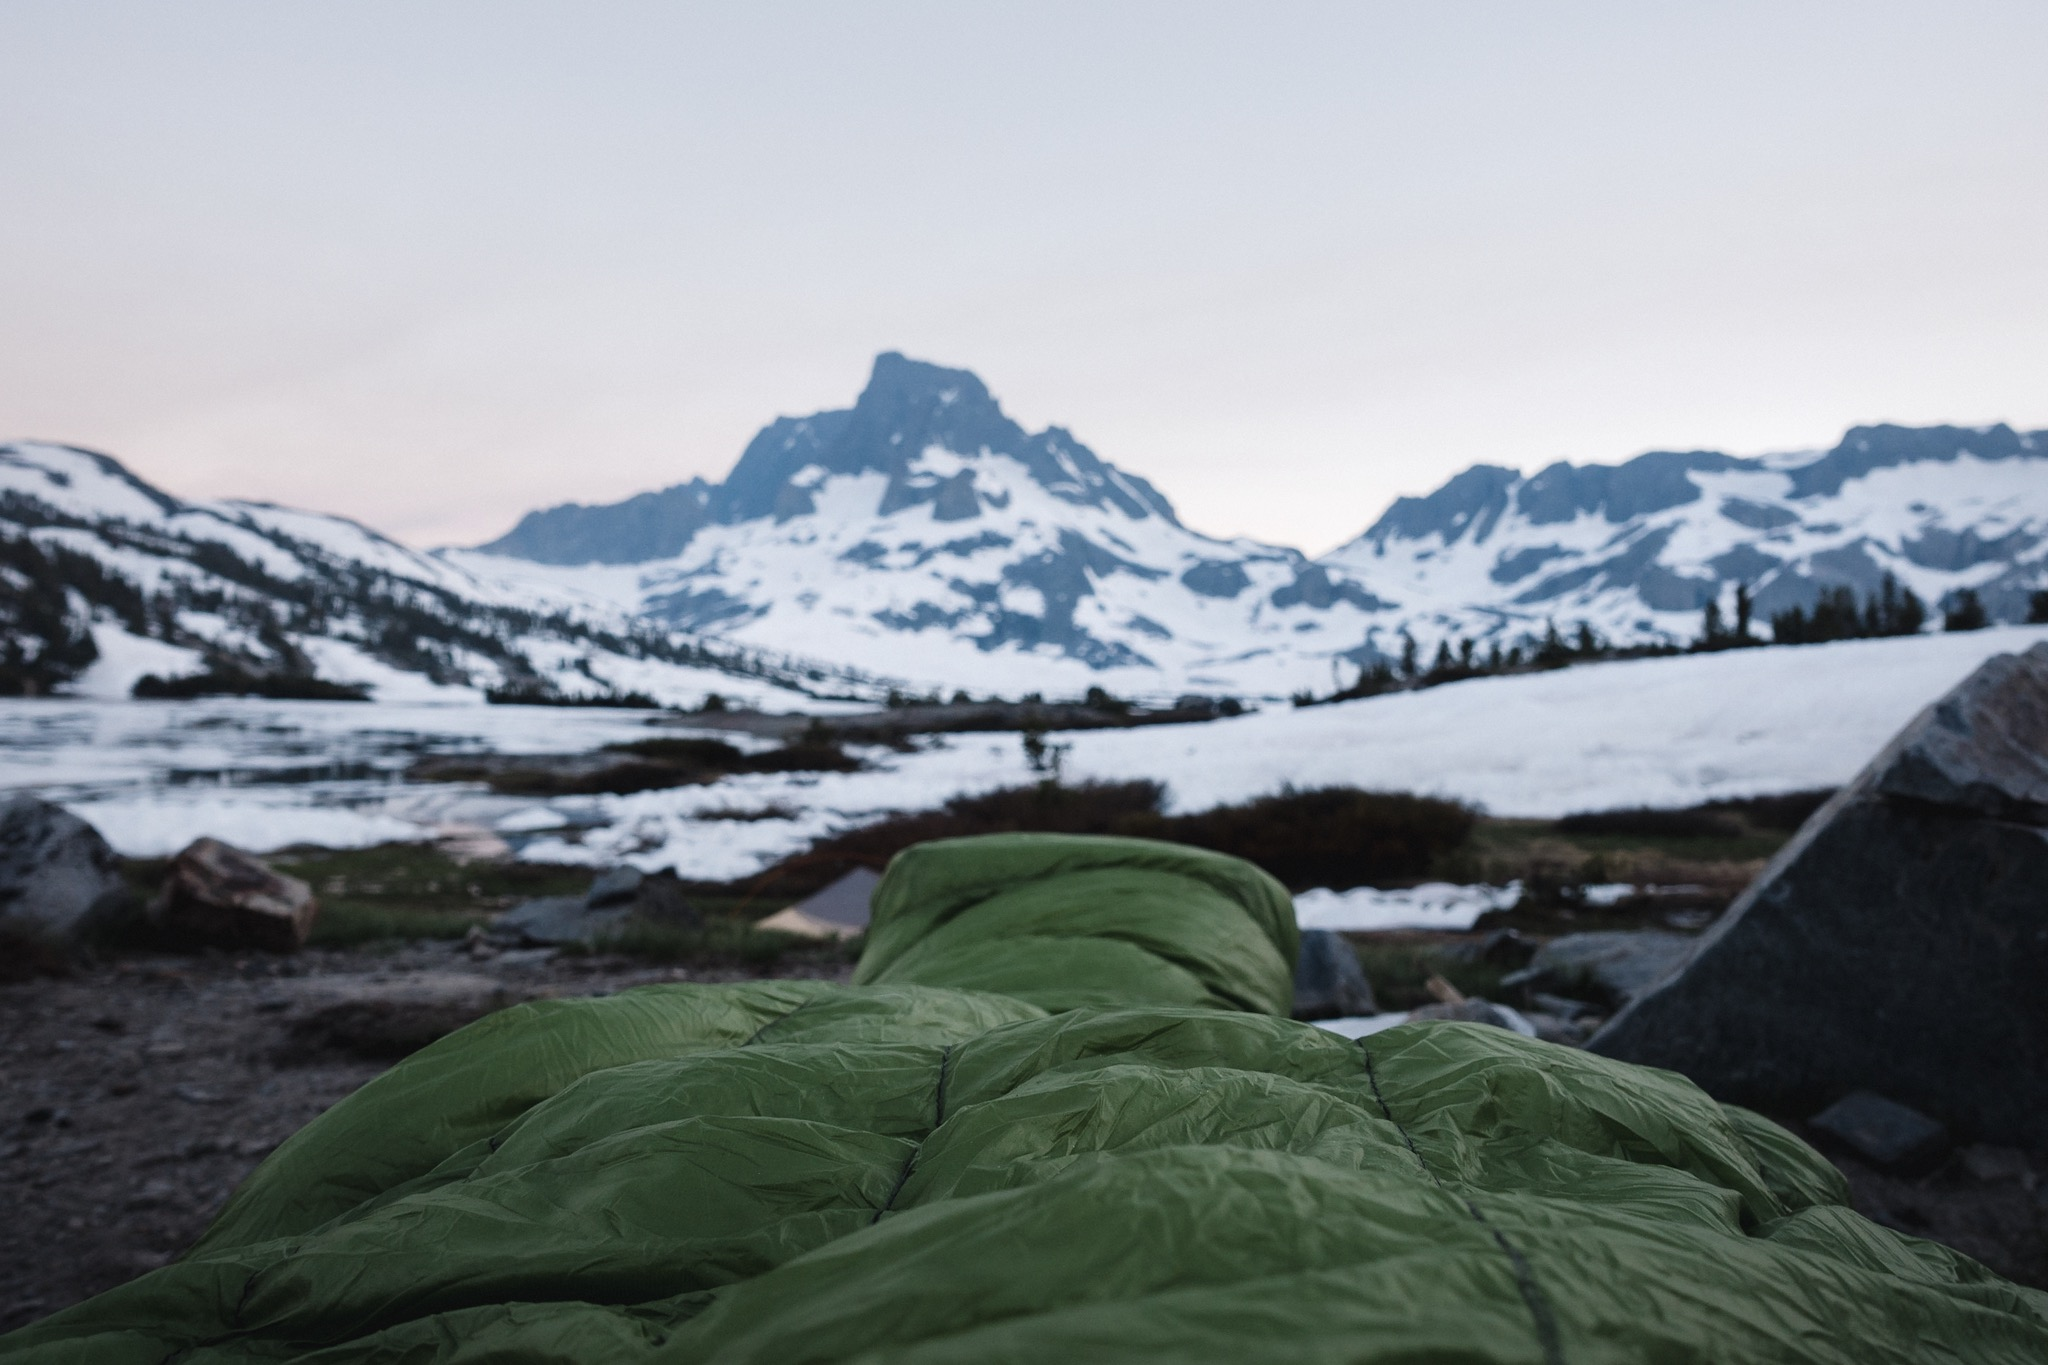 View from my sleeping bag.